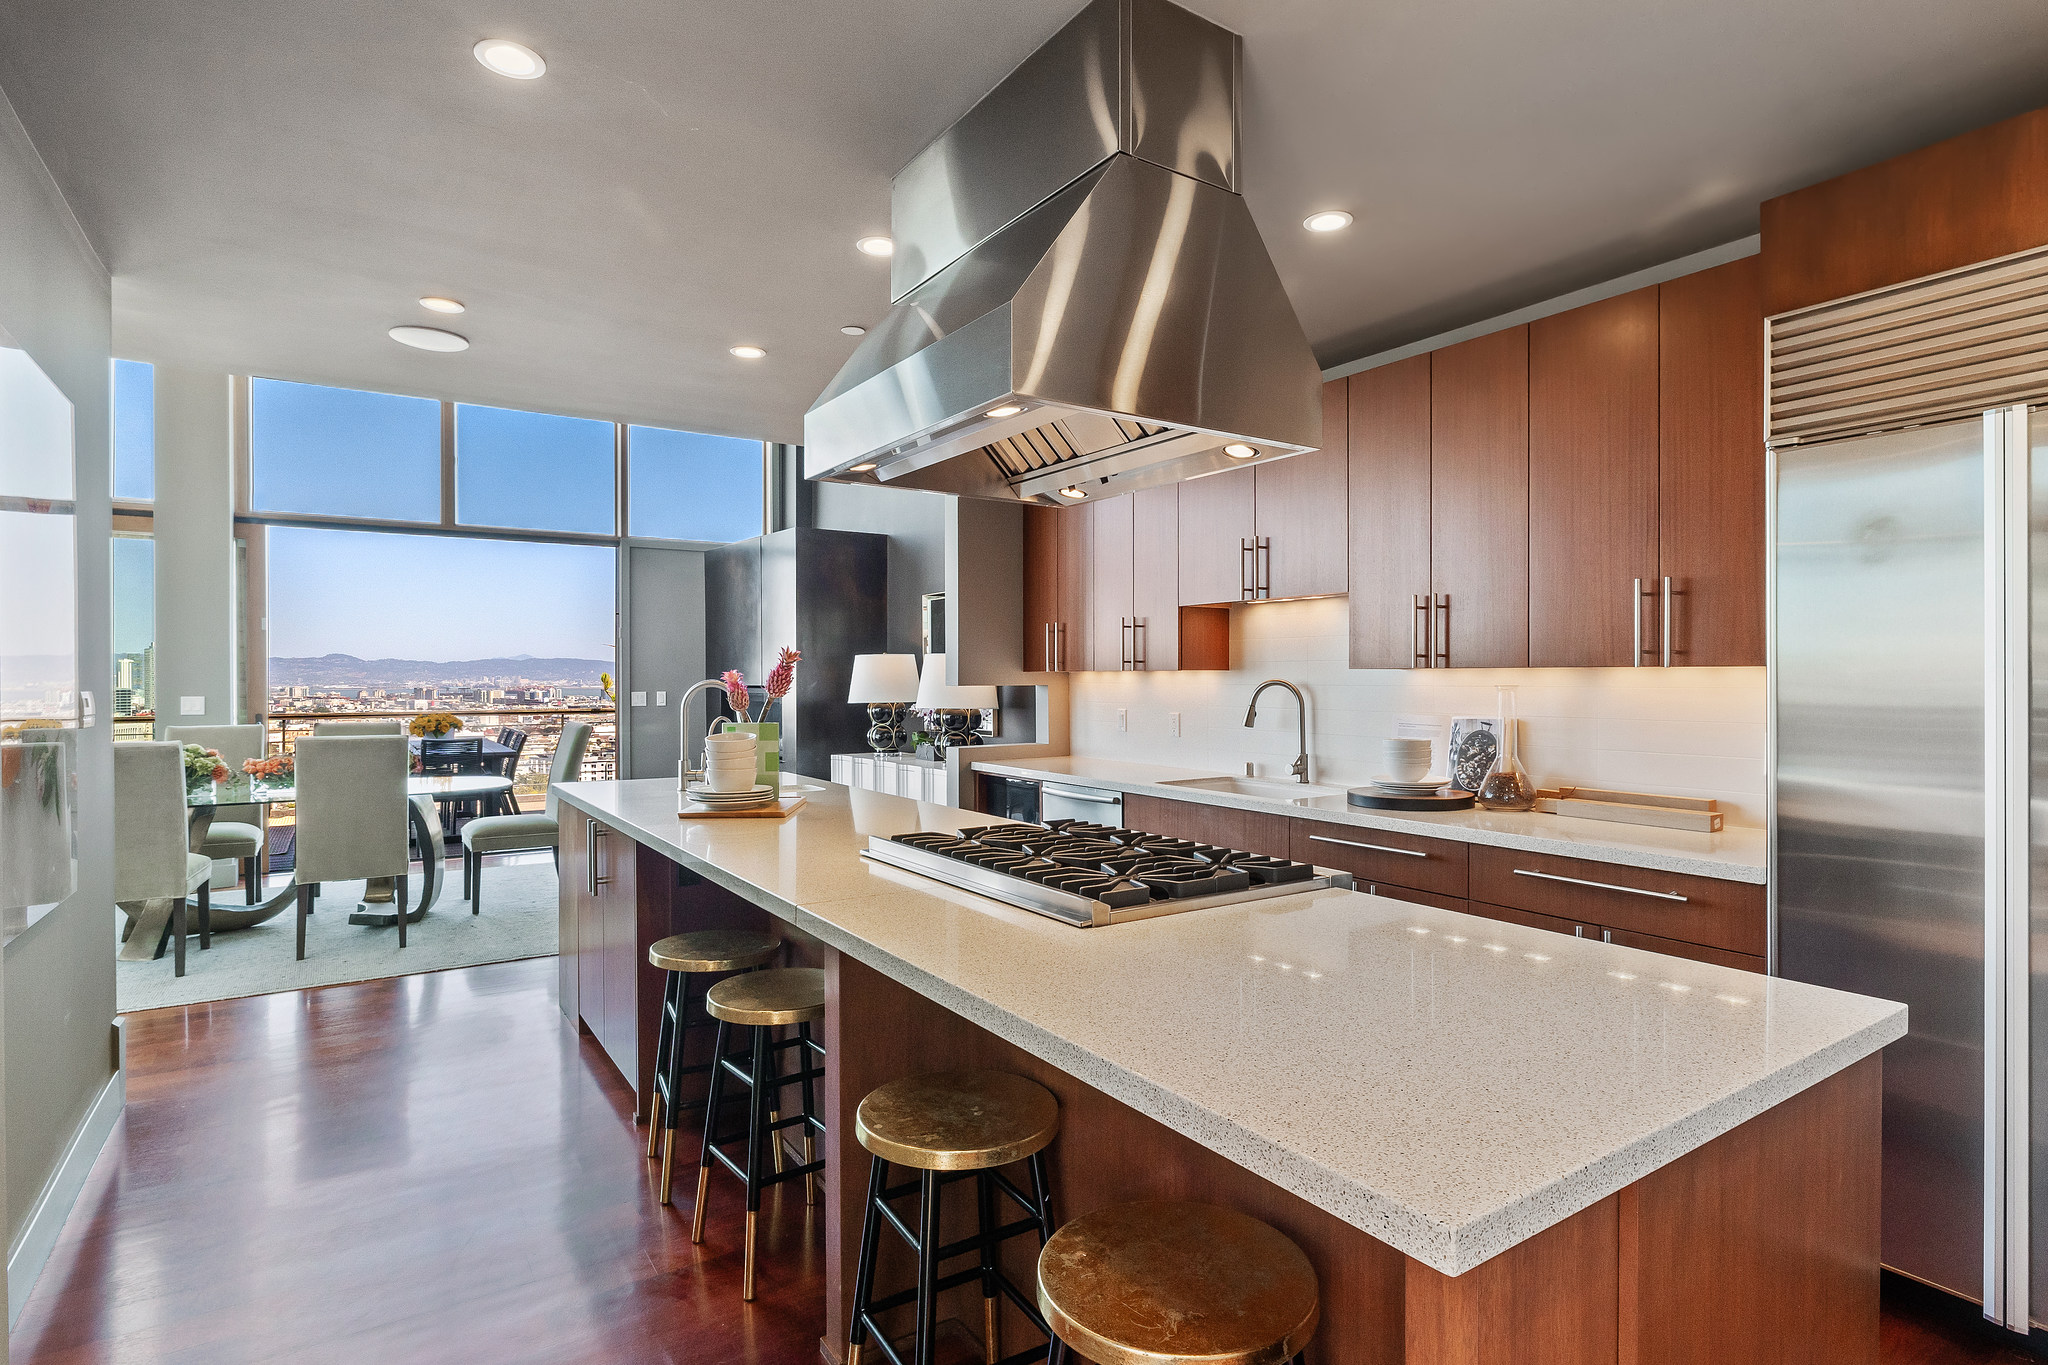 Kitchen with granite countertops and wood cabinets